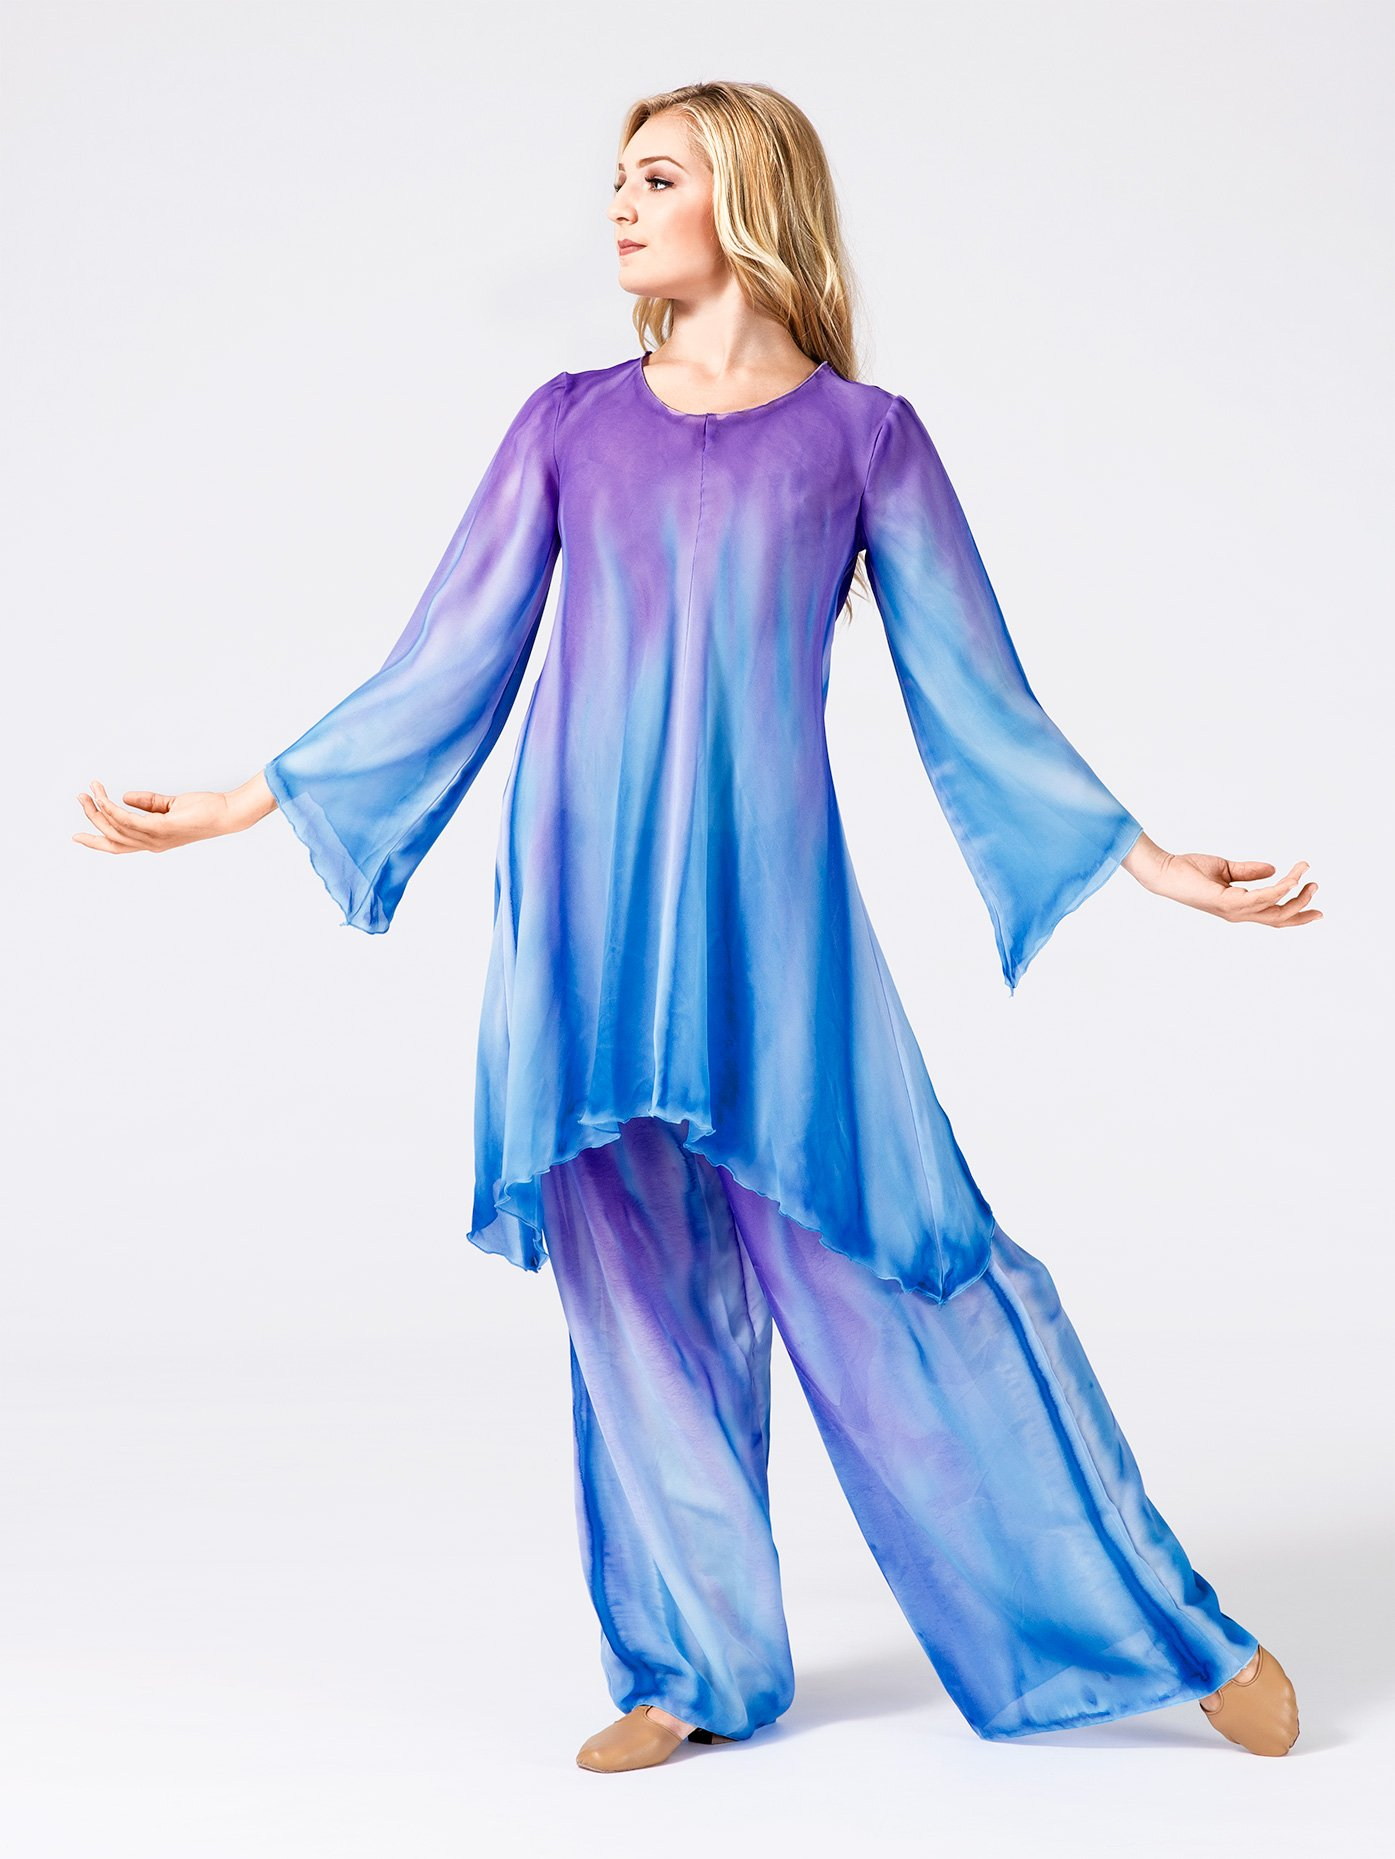 Watercolour Women's Plus Size Worship Long Sleeve Tunic WC101P